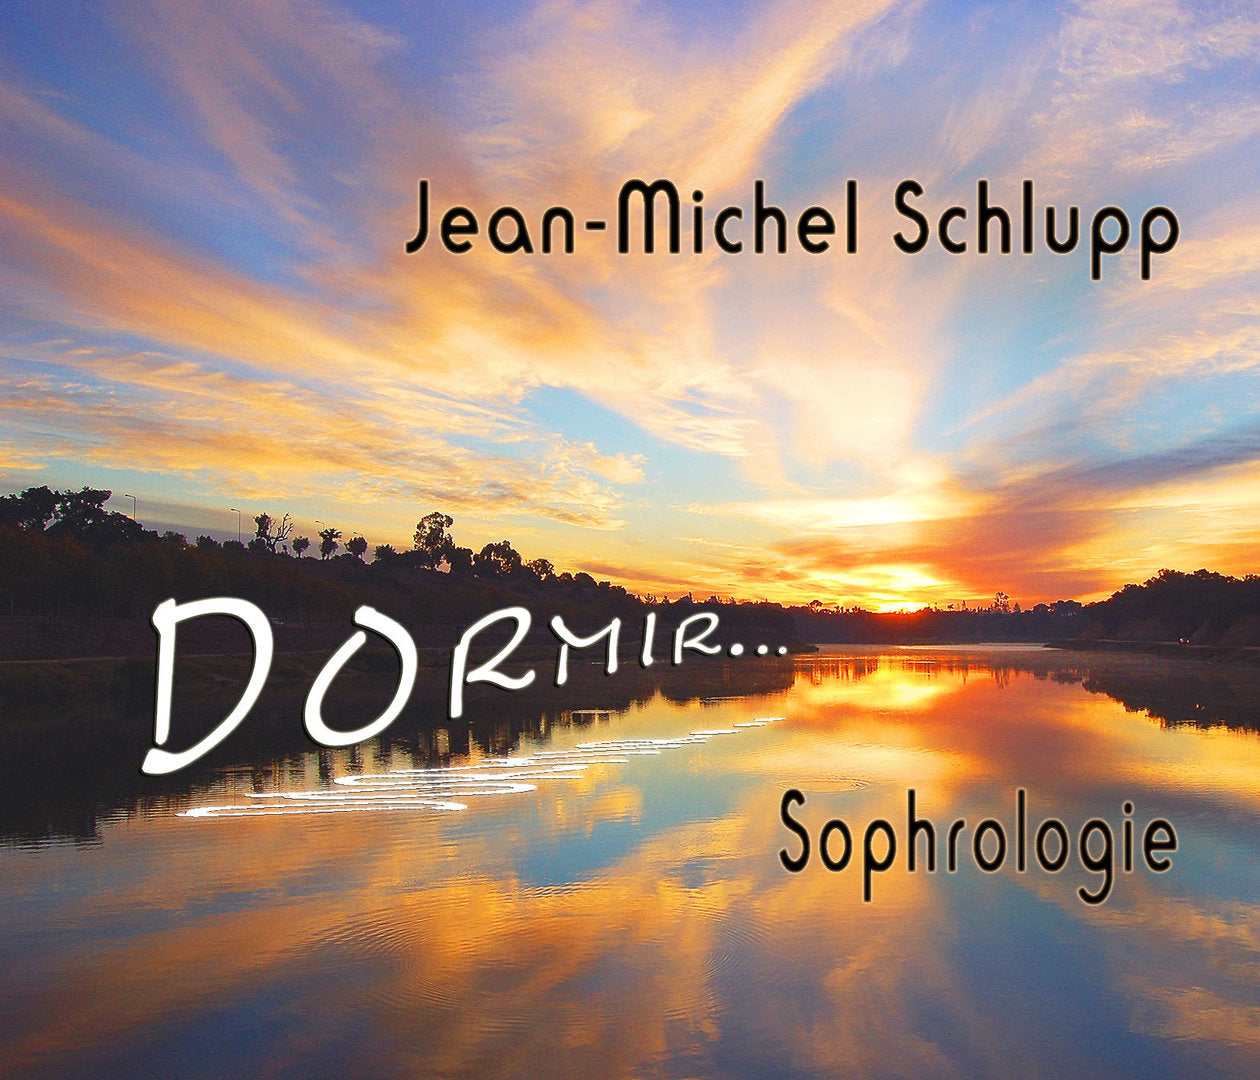 MP3 Dormir... - Sophrologie - Jean-Michel Schlupp - CD de relaxation